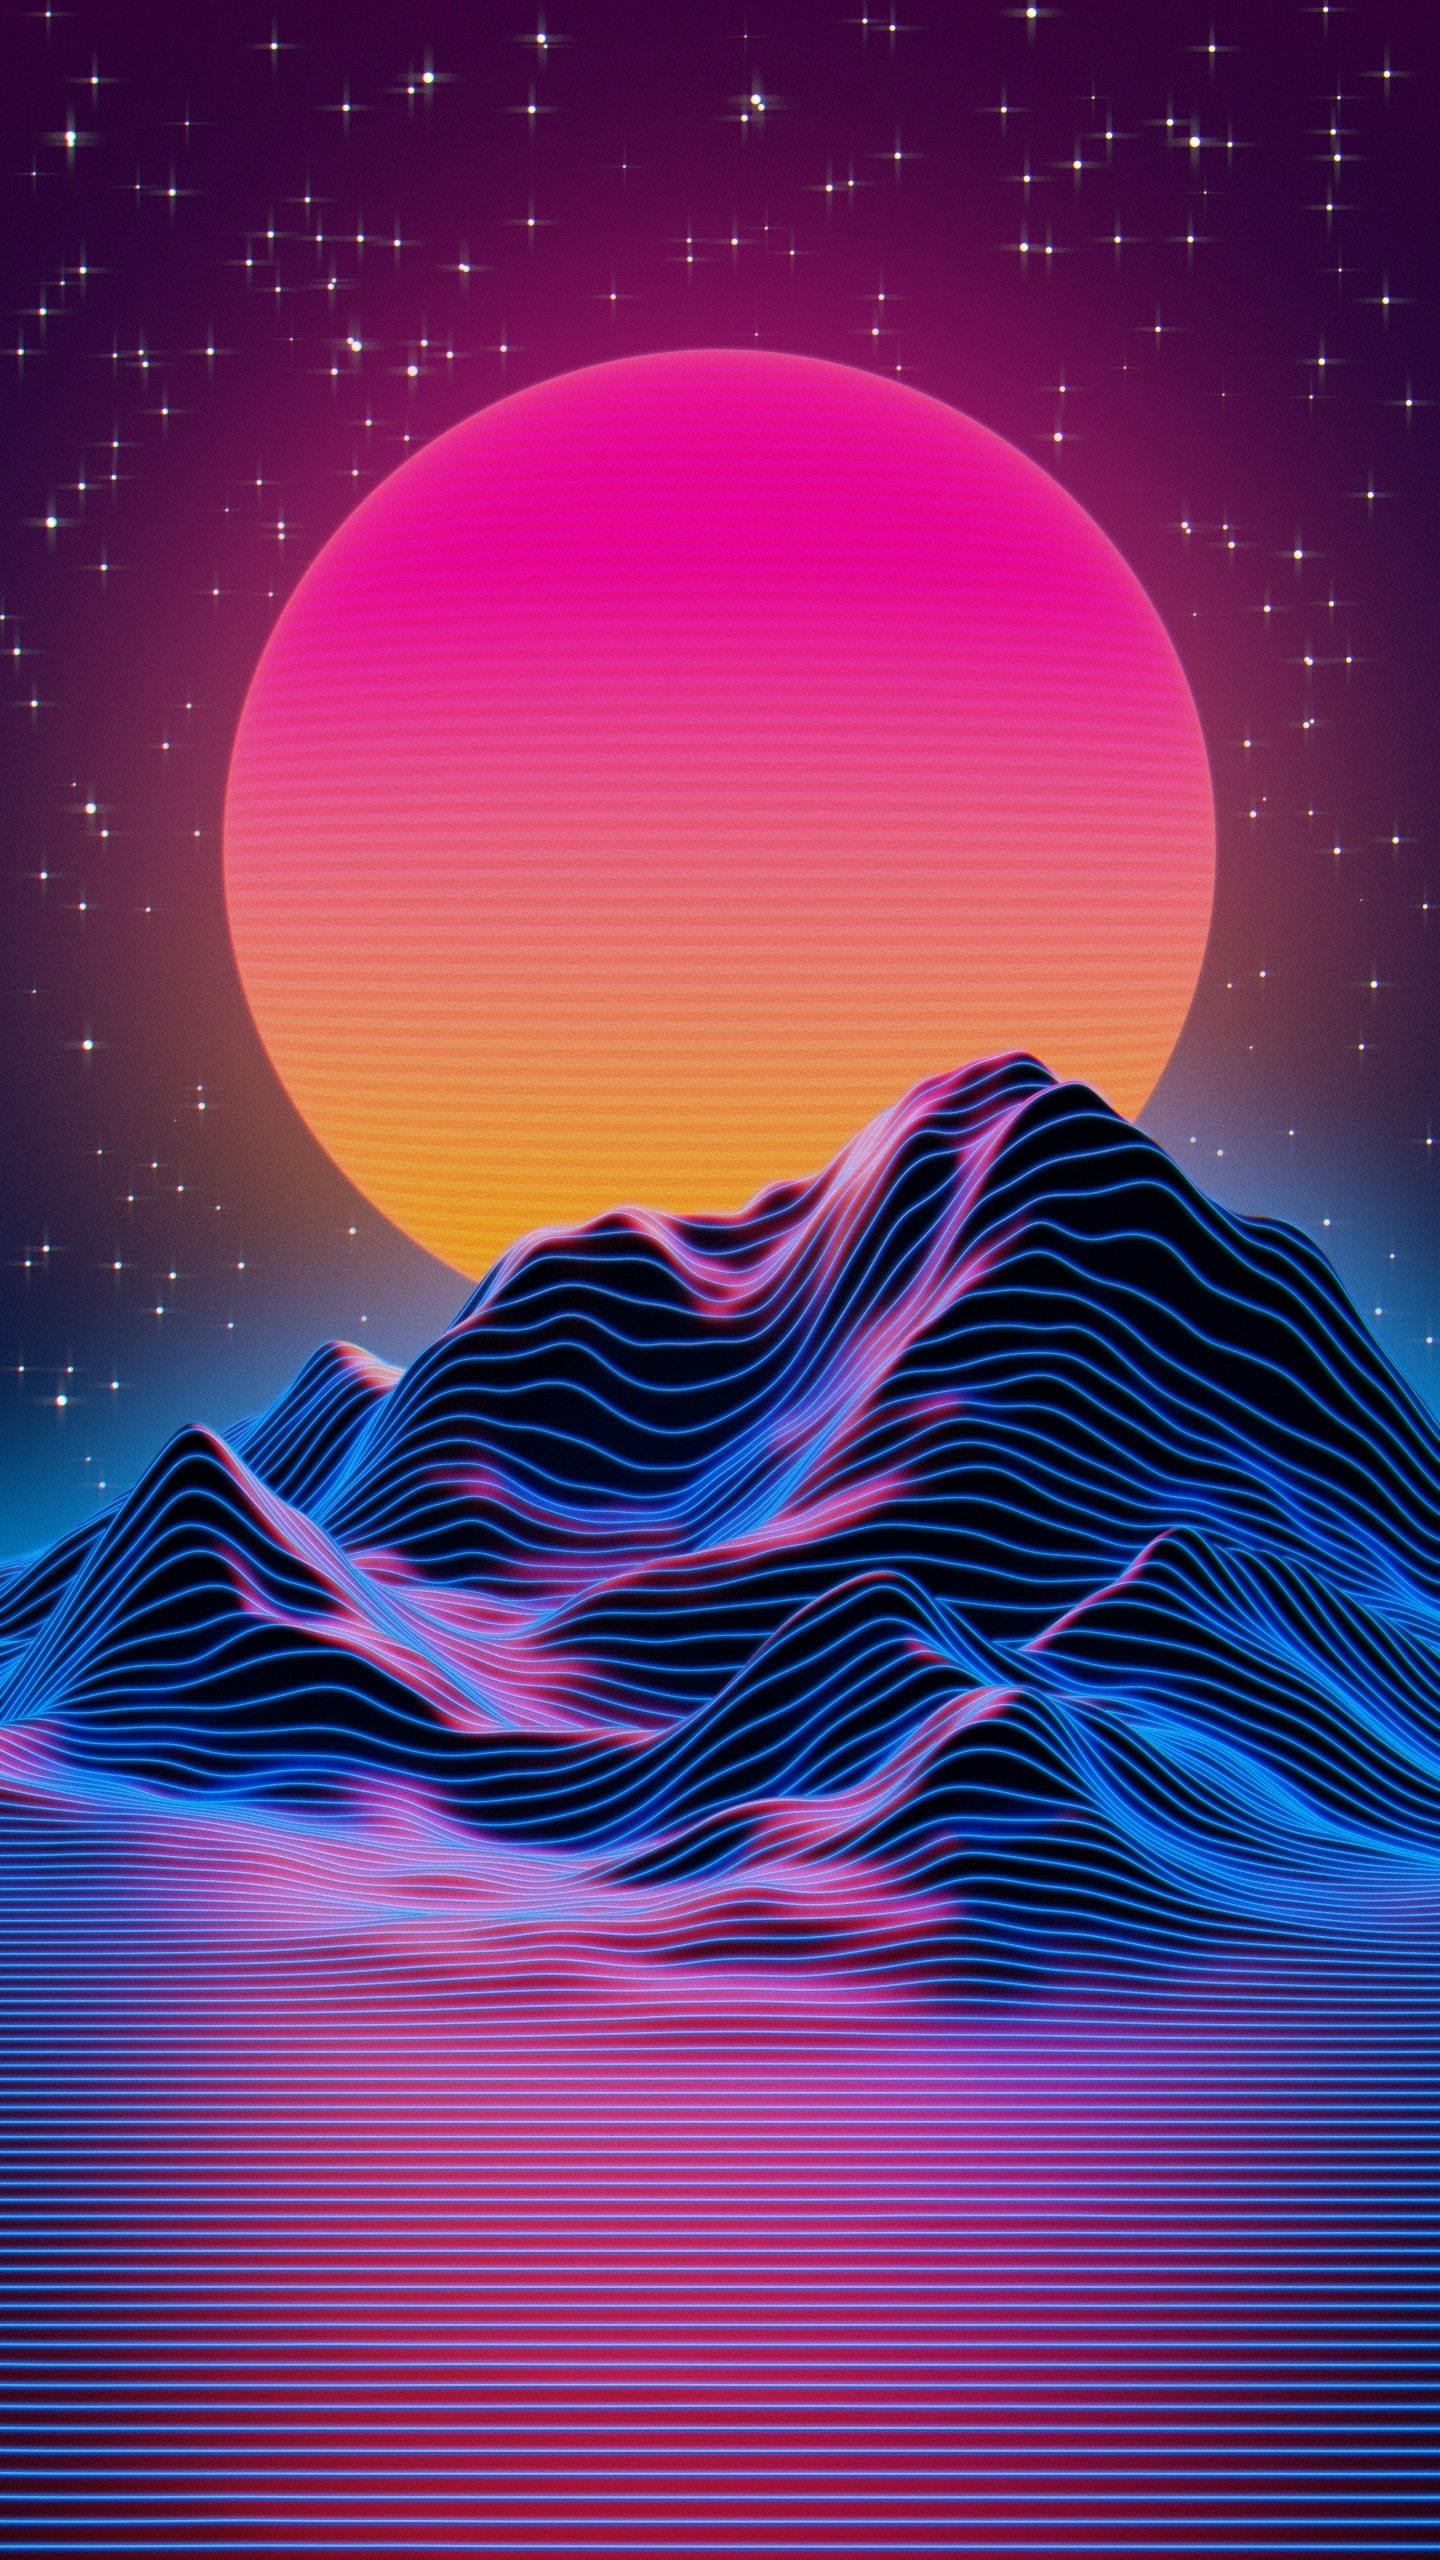 Vaporwave Iphone Wallpapers Kolpaper Awesome Free Hd Wallpapers